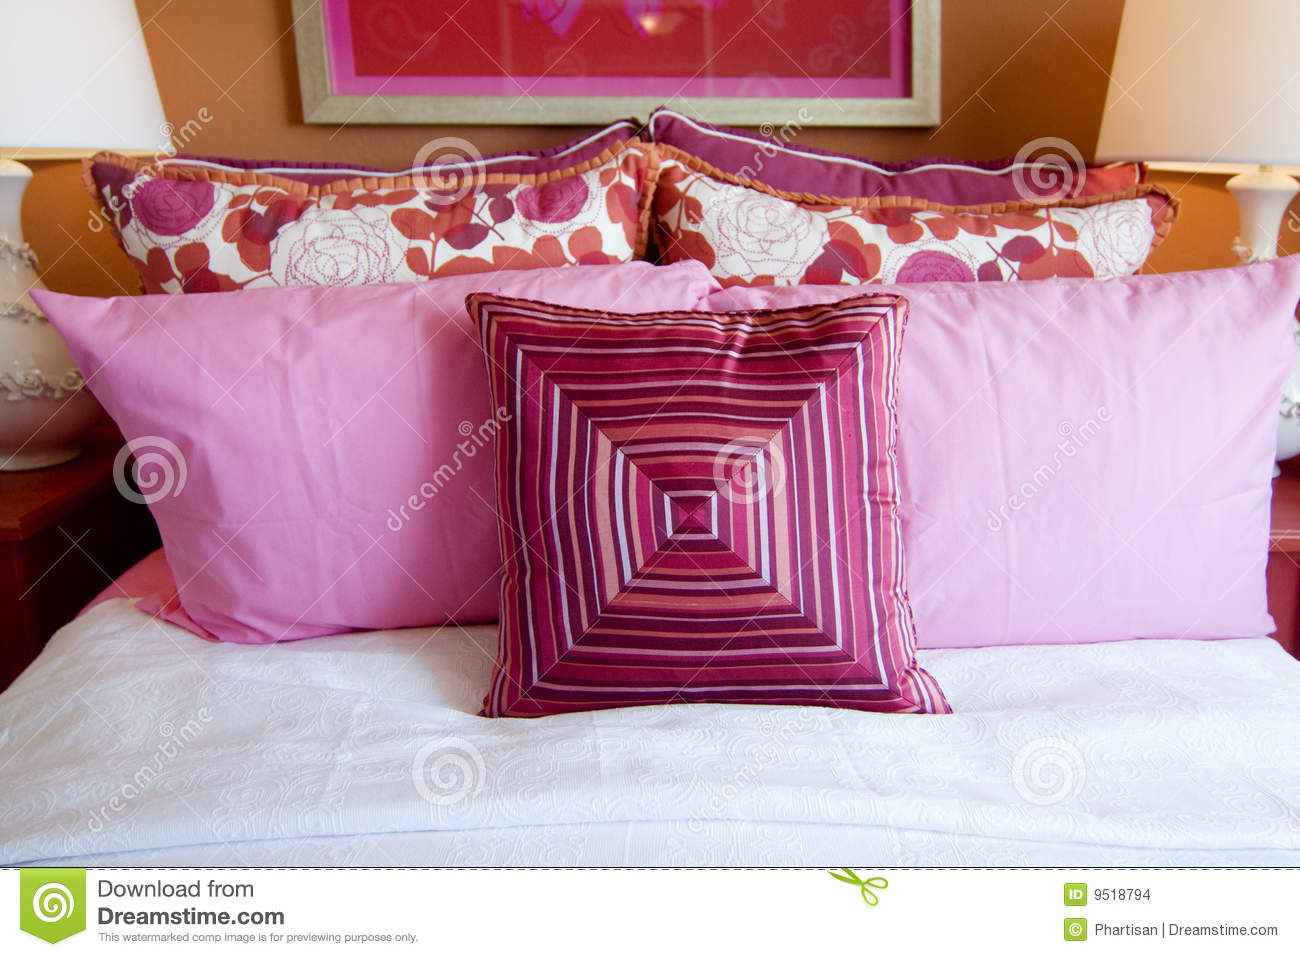 Pretty Fun Pink Bedroom Cushions Stock Photo - Image of ...